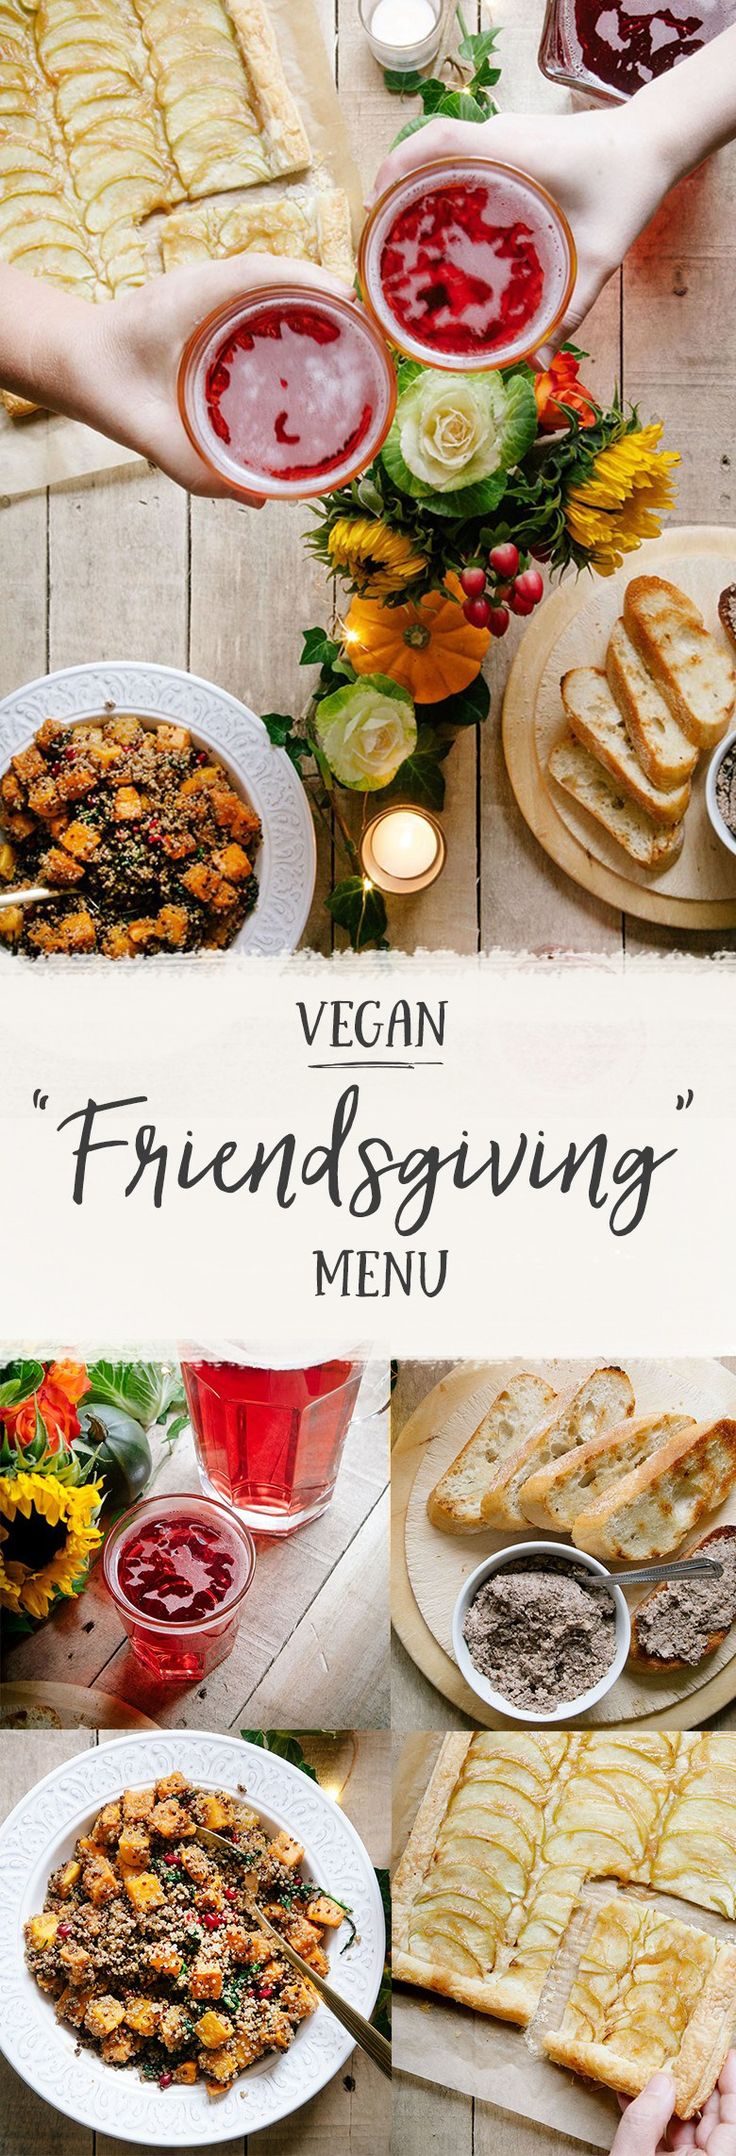 "Vegan ""Friendsgiving"" Recipes"